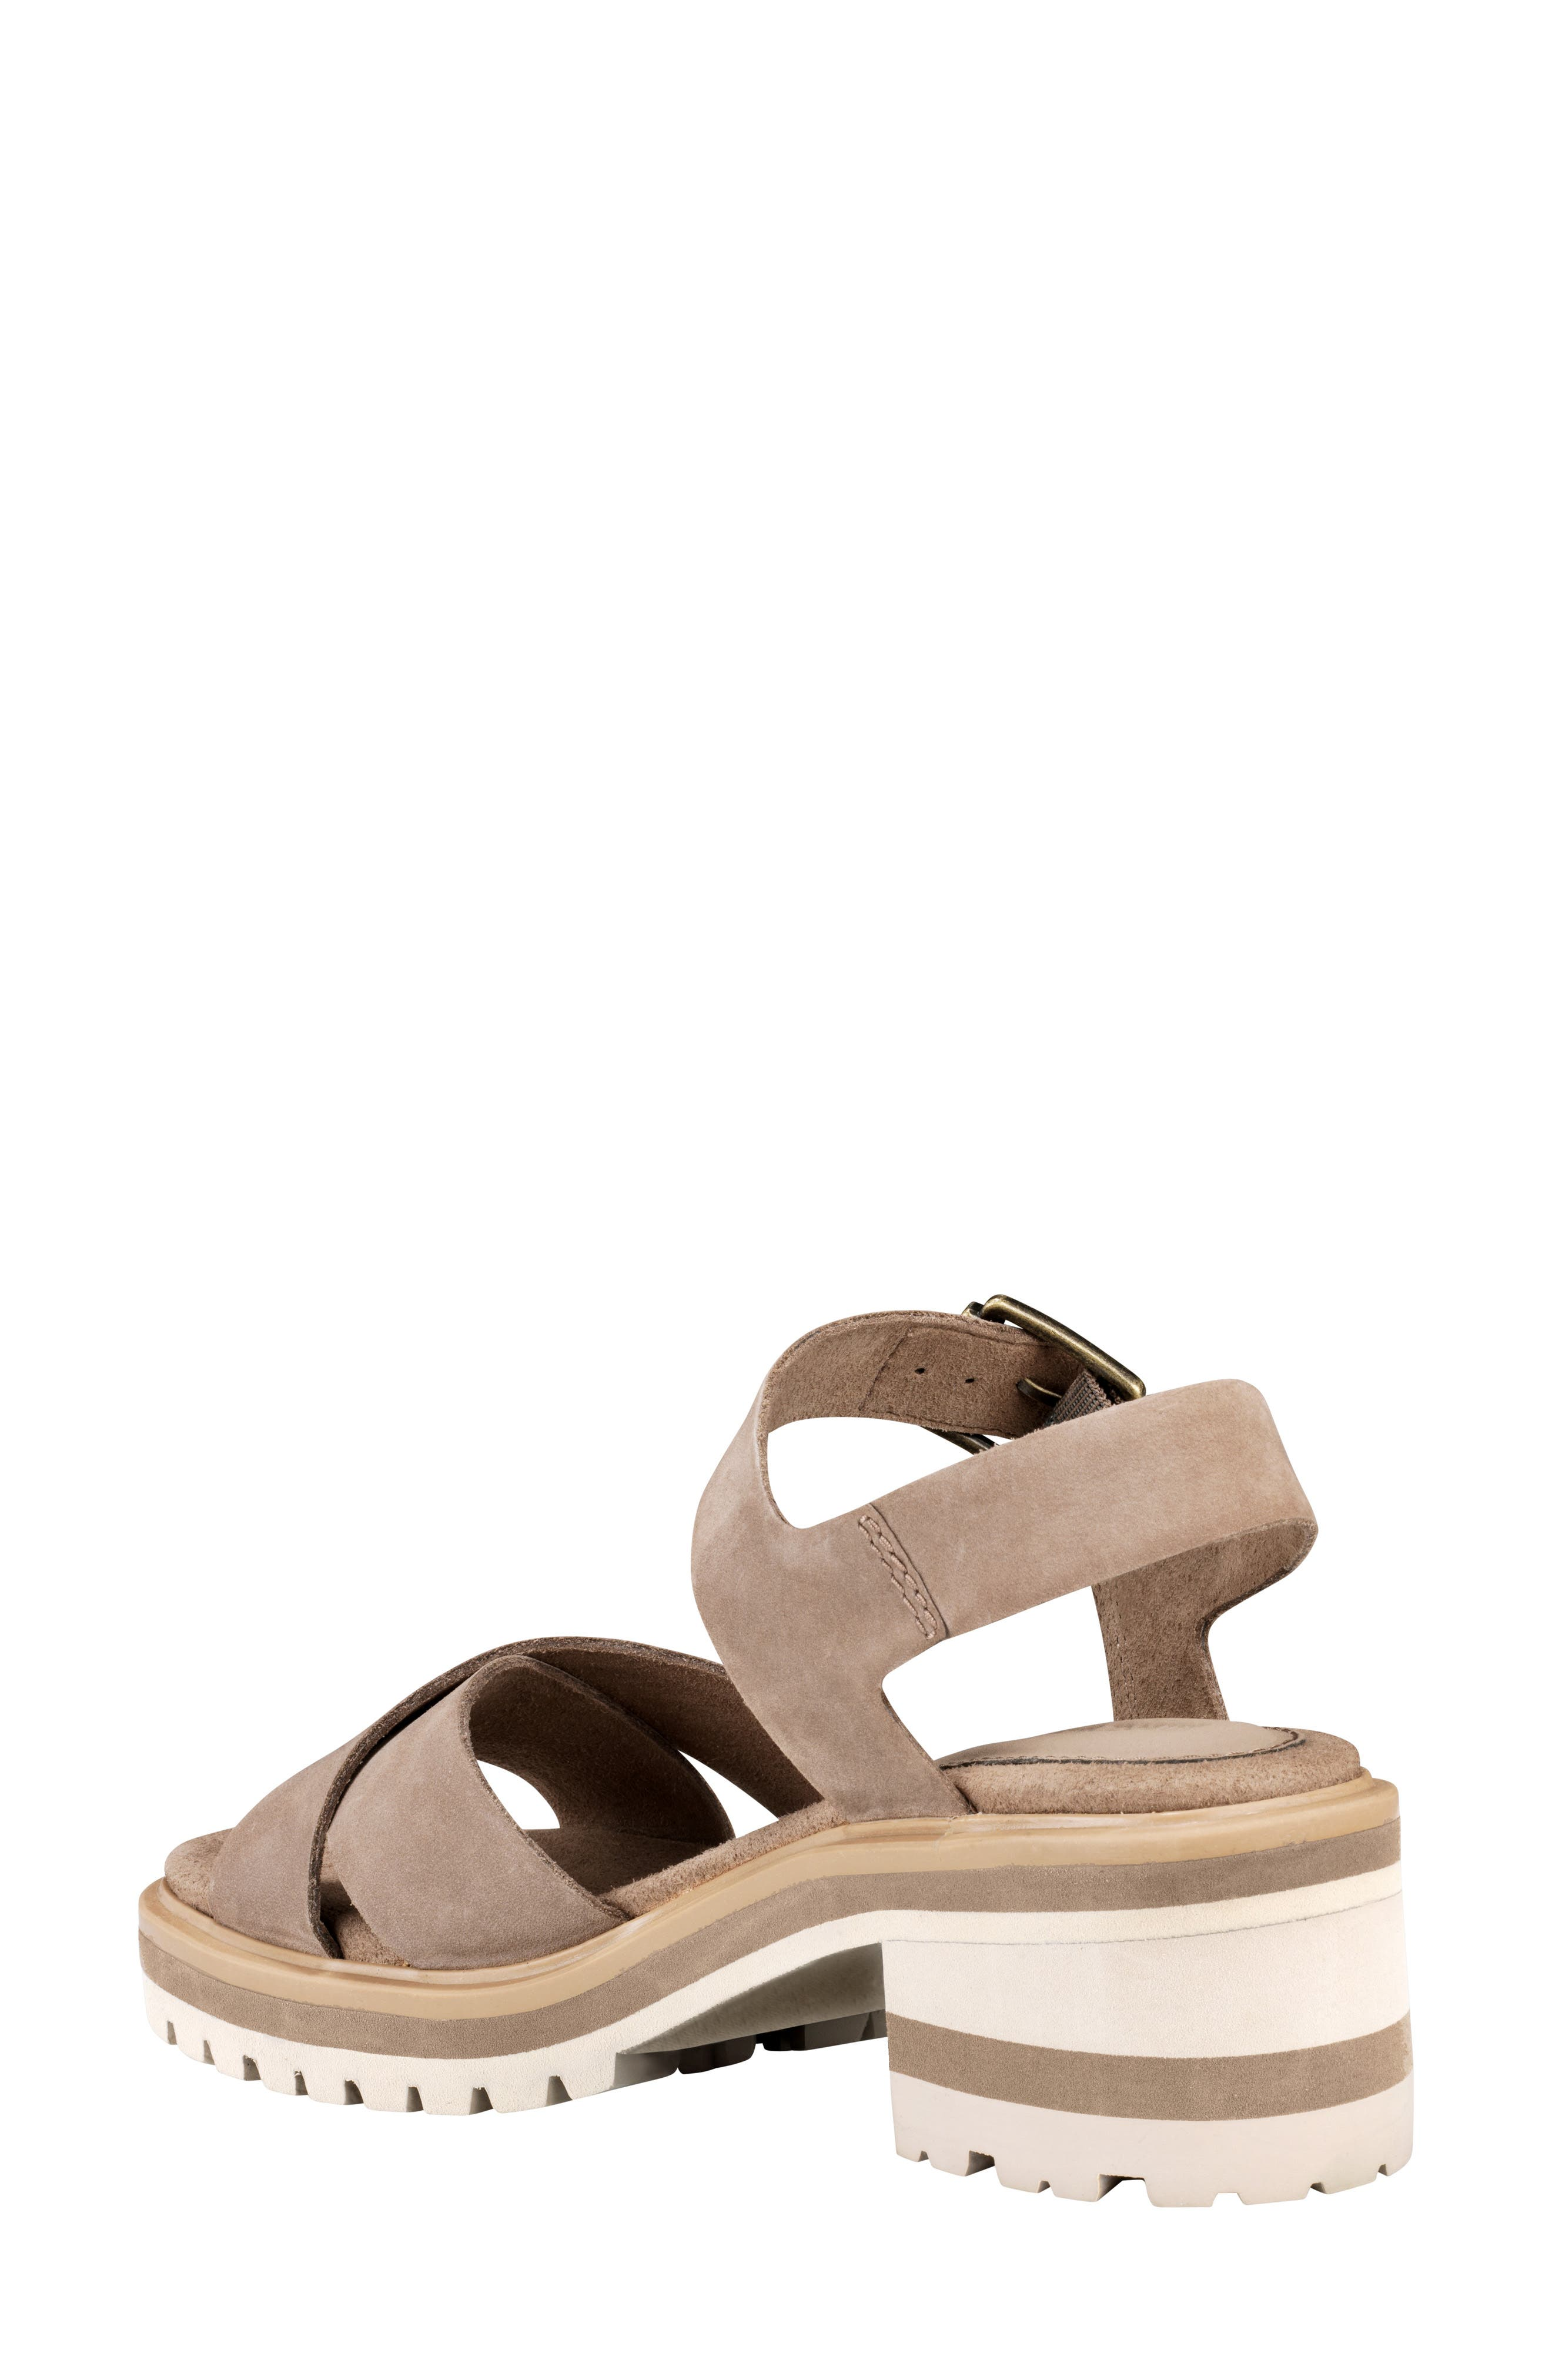 TIMBERLAND,                             Violet March Crisscross Sandal,                             Alternate thumbnail 2, color,                             TAUPE NUBUCK LEATHER